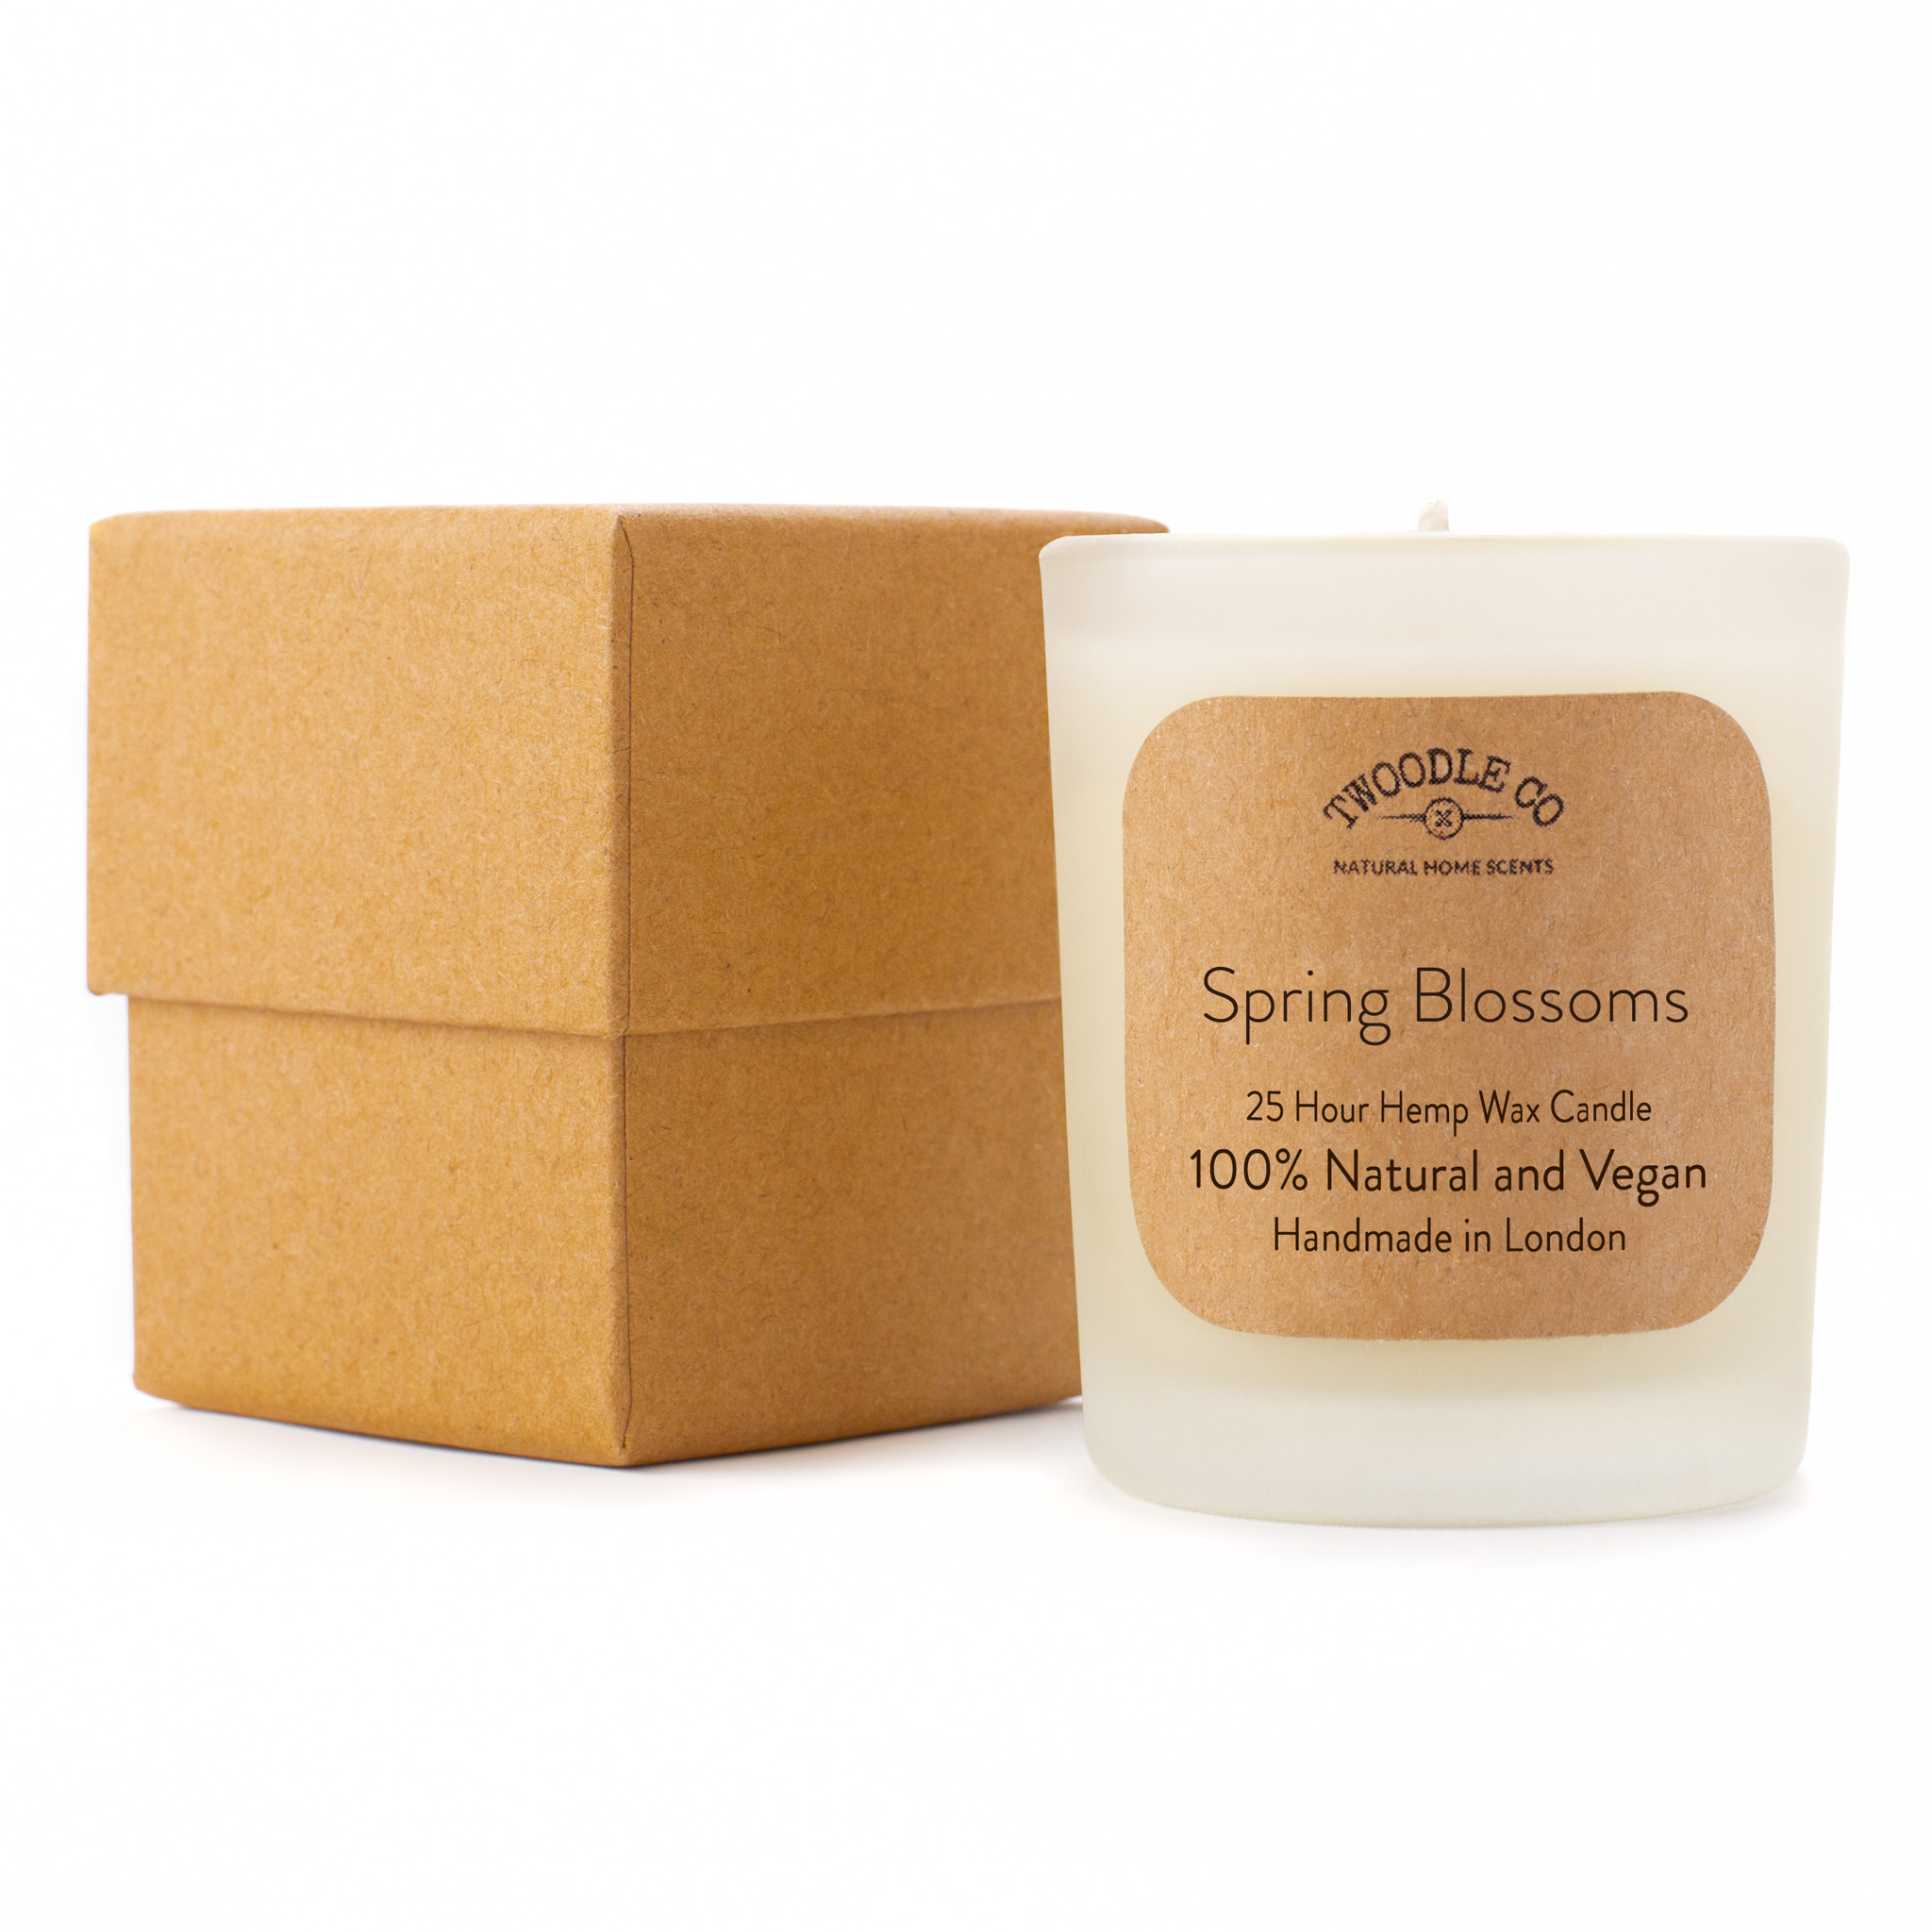 Spring Blossoms Small Scented Candle 25 Hour